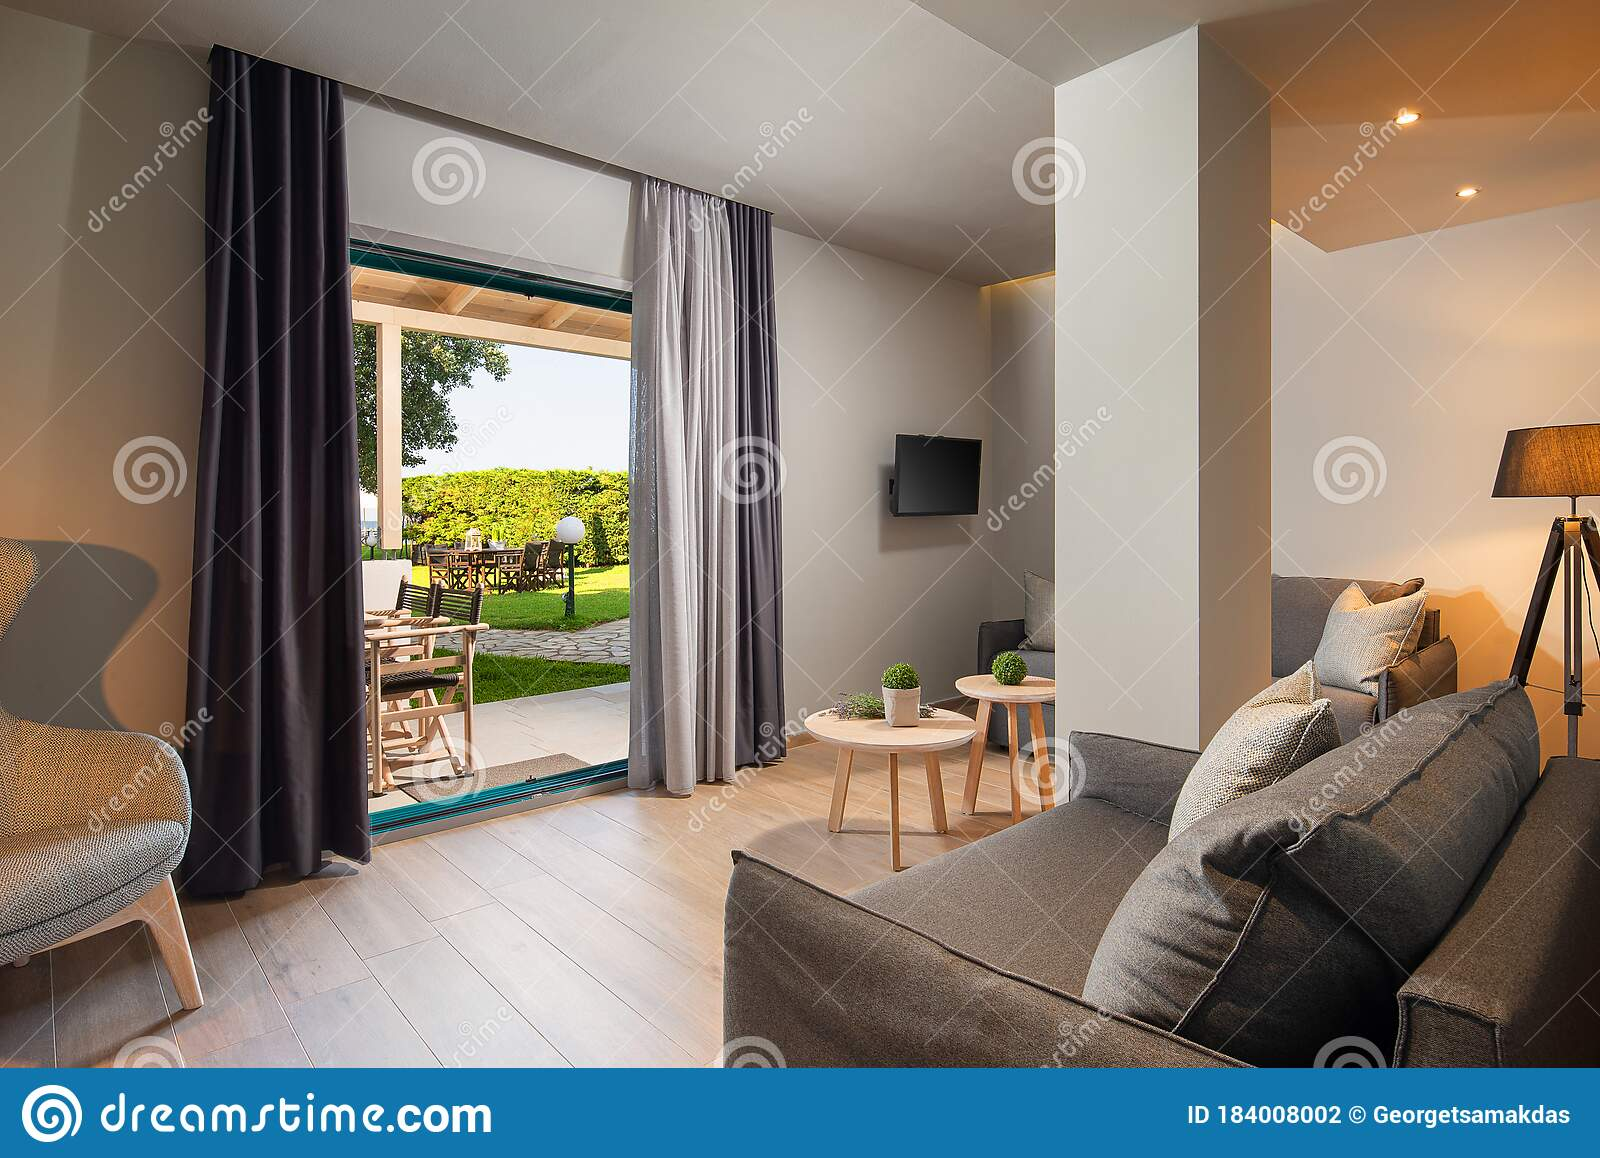 Modern Gray And Wooden Living Room With Big French Window And Green Garden Terrace Eco Style Interior Concept Design Stock Photo Image Of Home Interior 184008002